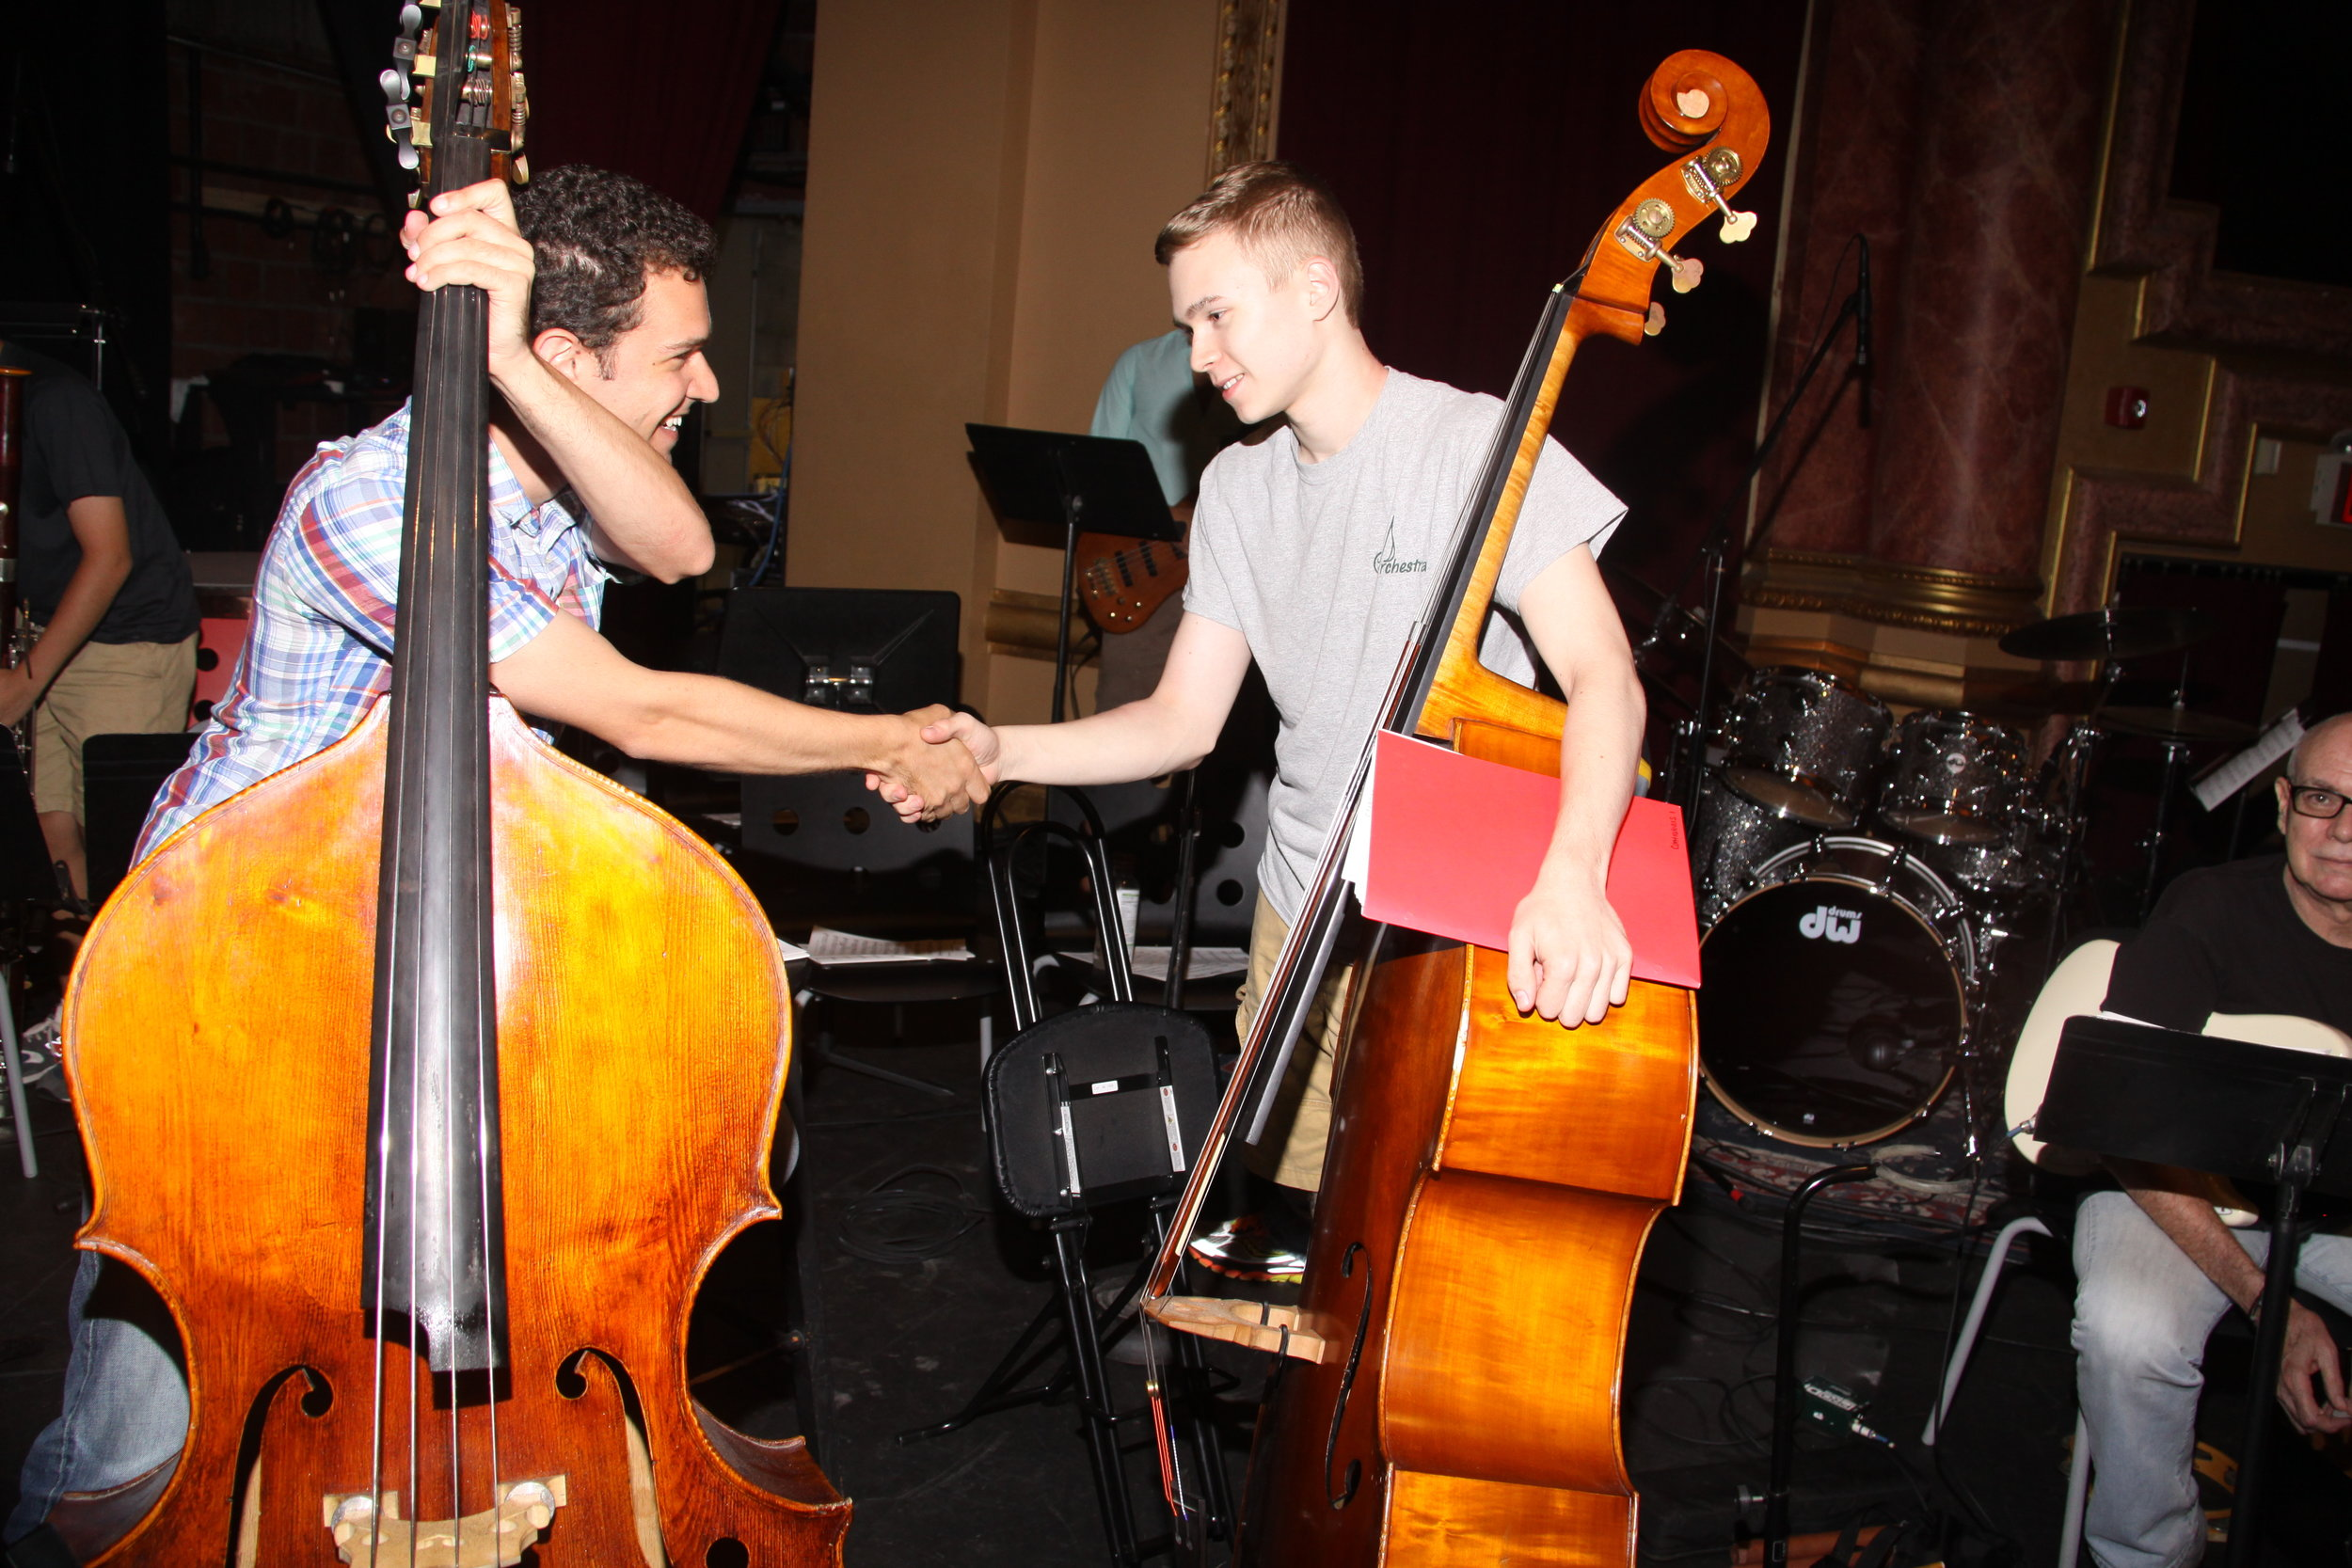 GMAO Double Bass Mentor & Student Photo no 2, Photo Credit: Andrew Stein